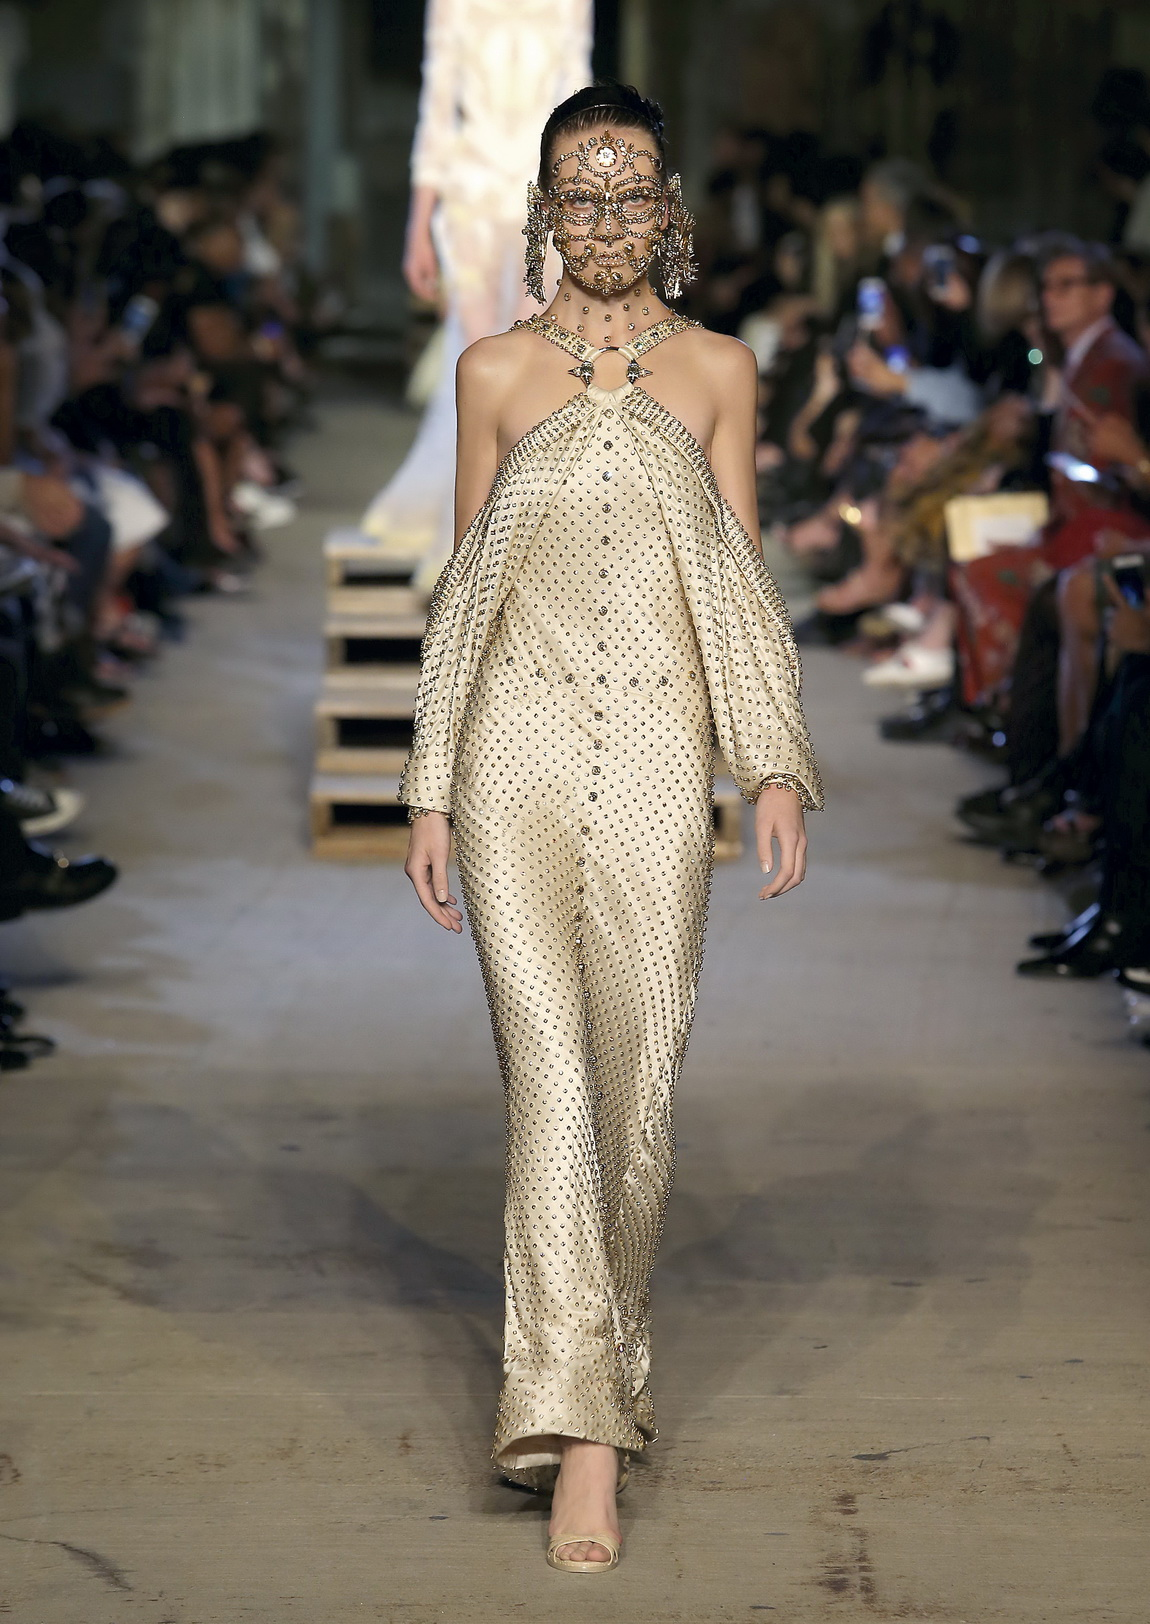 GIVENCHY BY RICCARDO TISCI SPRING SUMMER 2016 COLLECTION IN NEW-YORK CITY